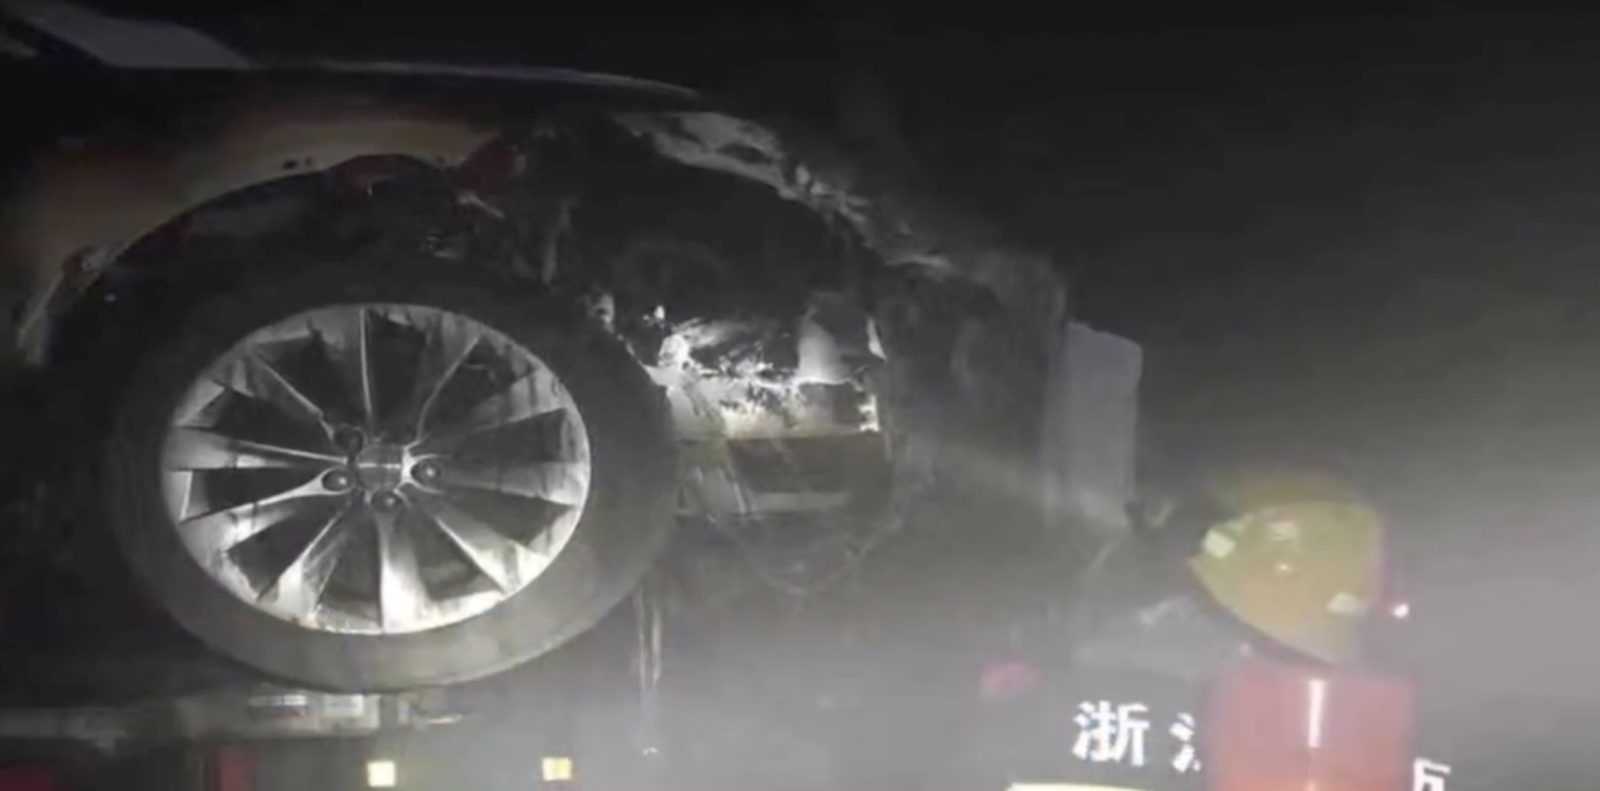 Tesla caught on fire in China, Tesla says third-party body shop is to blame